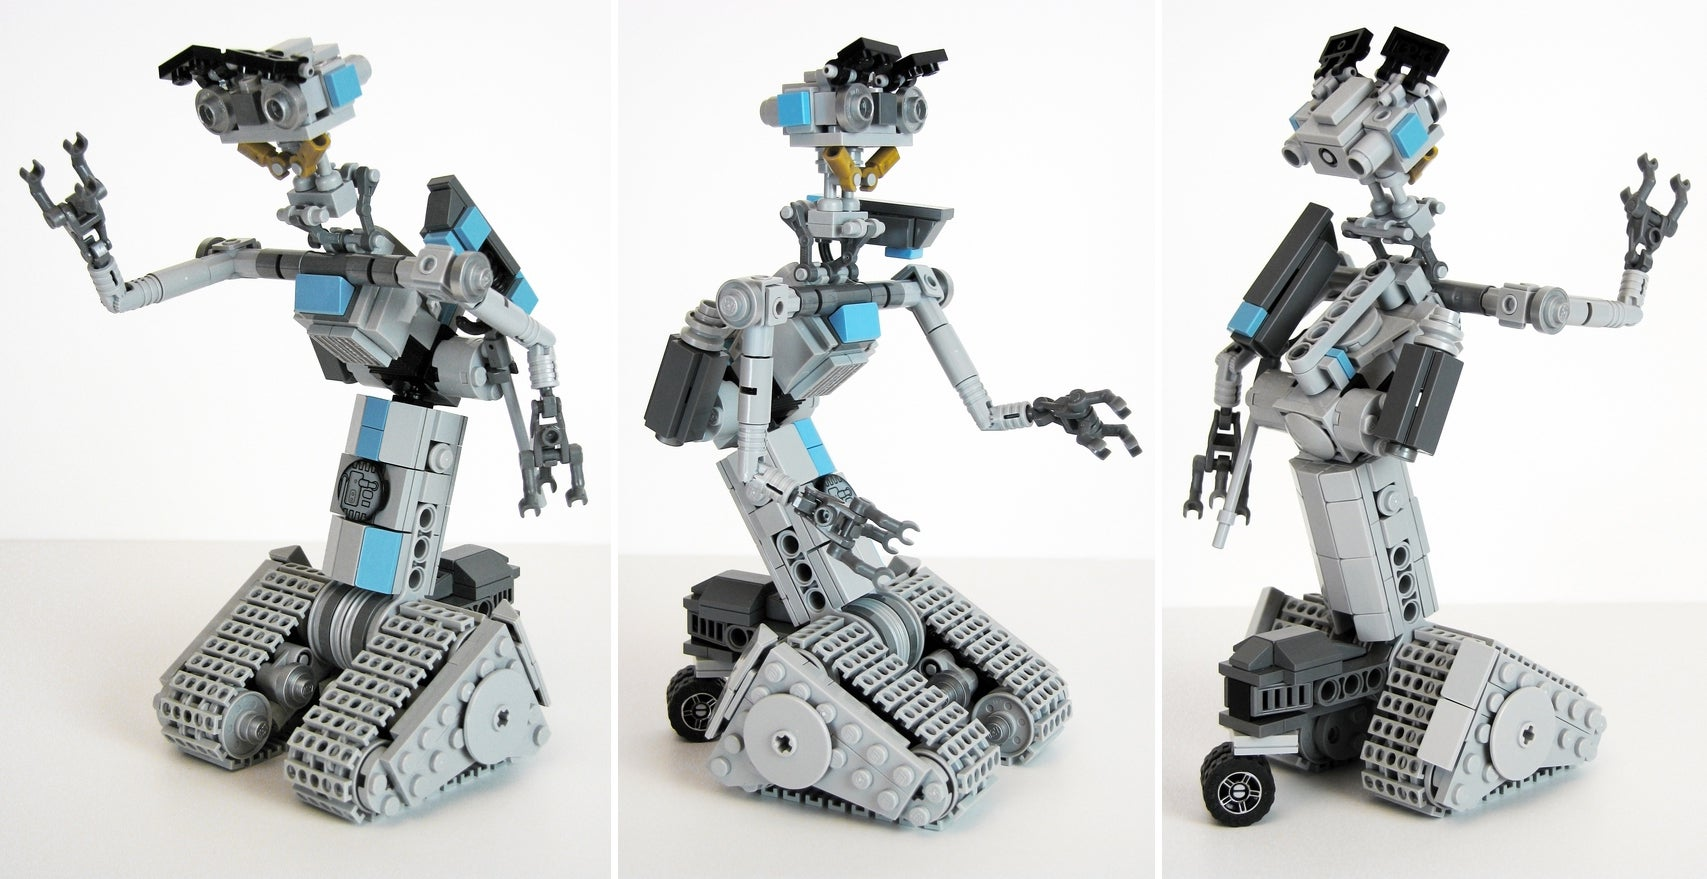 johnny-five lego lego-ideas robots short-circuit toys